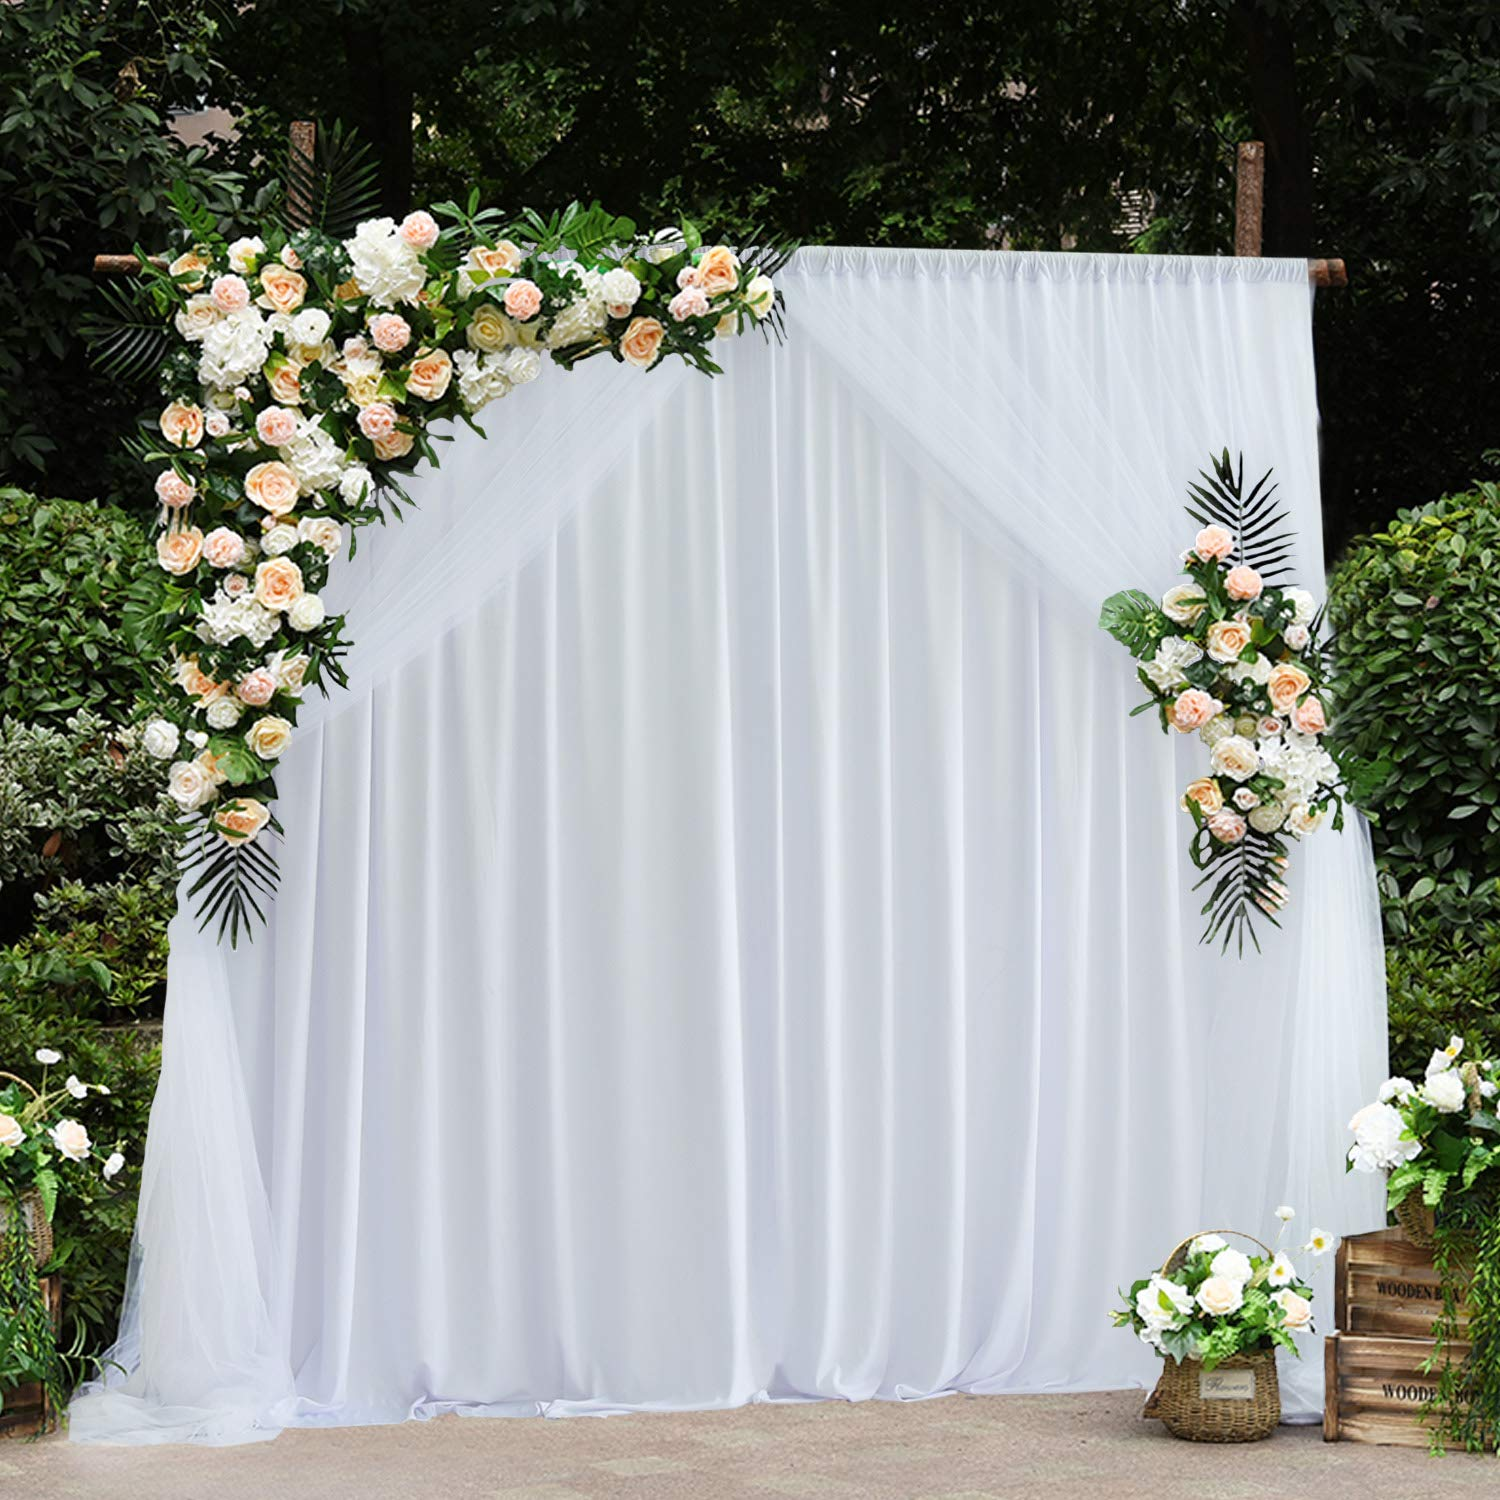 White Tulle Backdrop Curtains for Weddings Baby Shower Birthday Party Bridal Shower Engagement 5x7 Photo Backdrop,Pack of 2